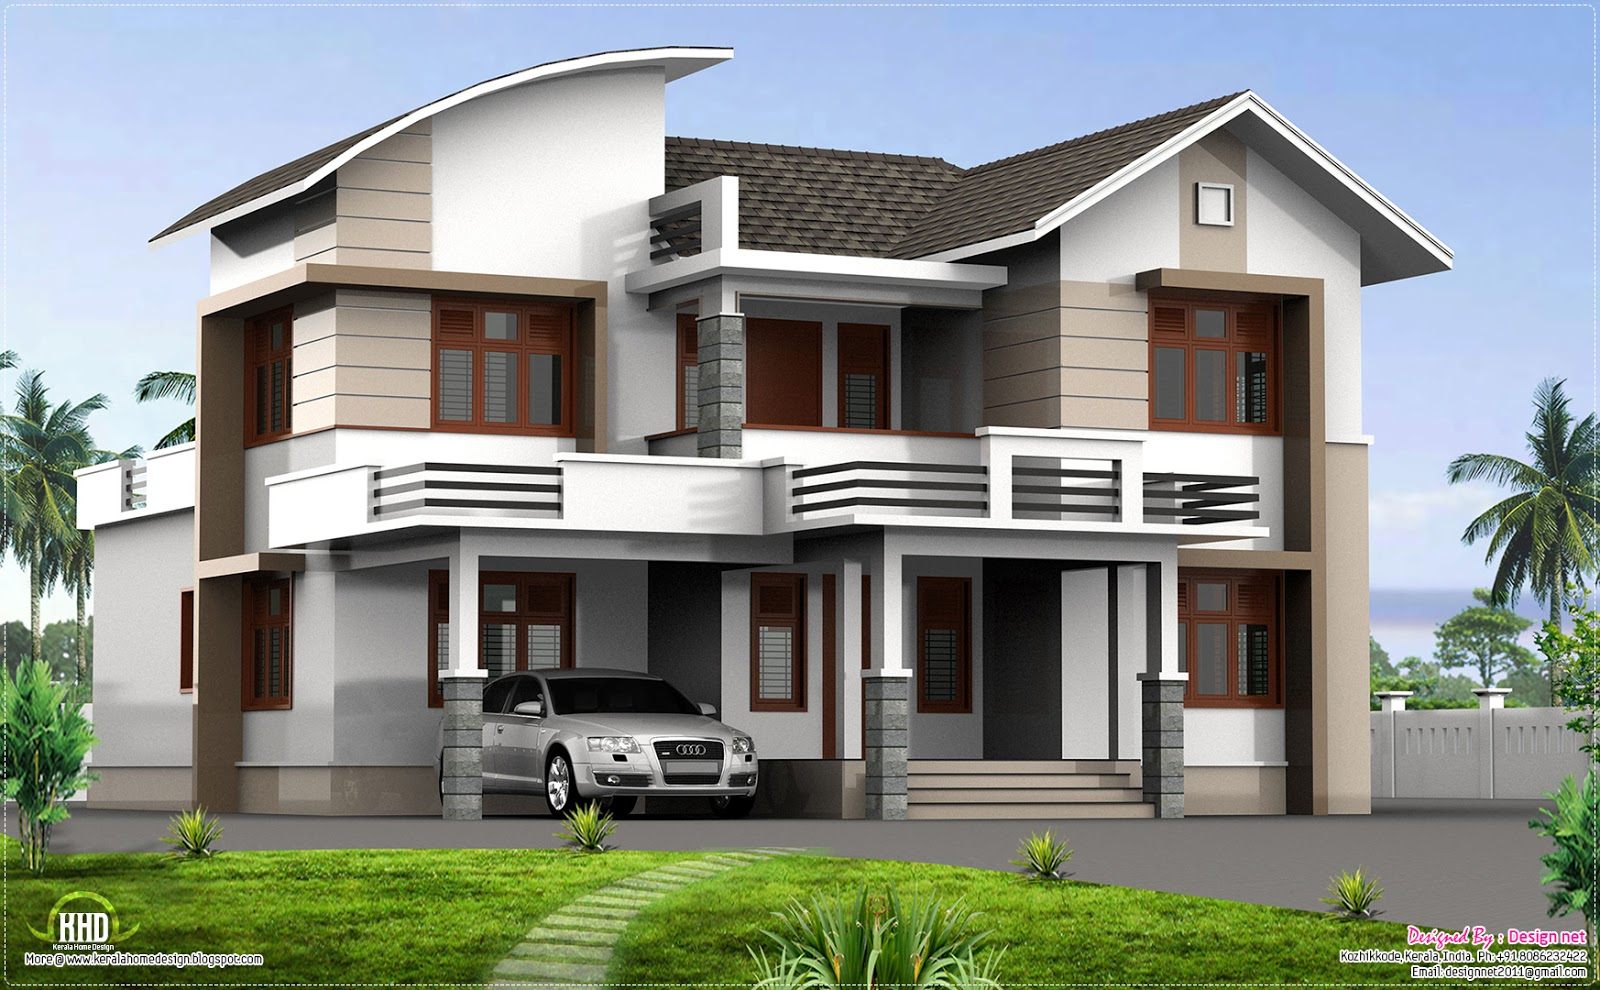 2400 4 bedroom home design kerala home design for Home designs 4 you